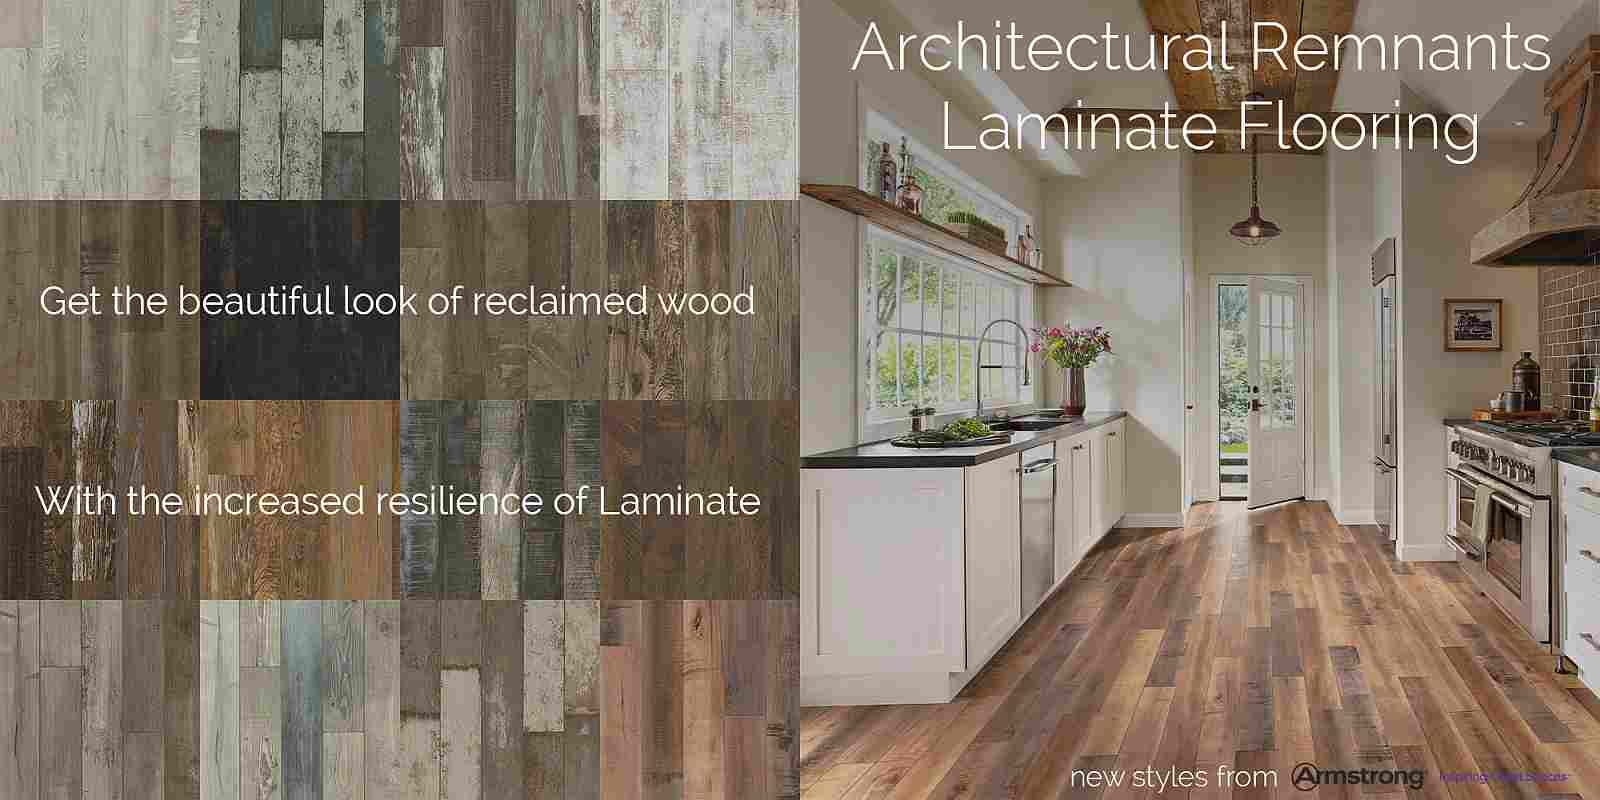 Shop the most beautiful reclaimed wood looks on laminate floors today!